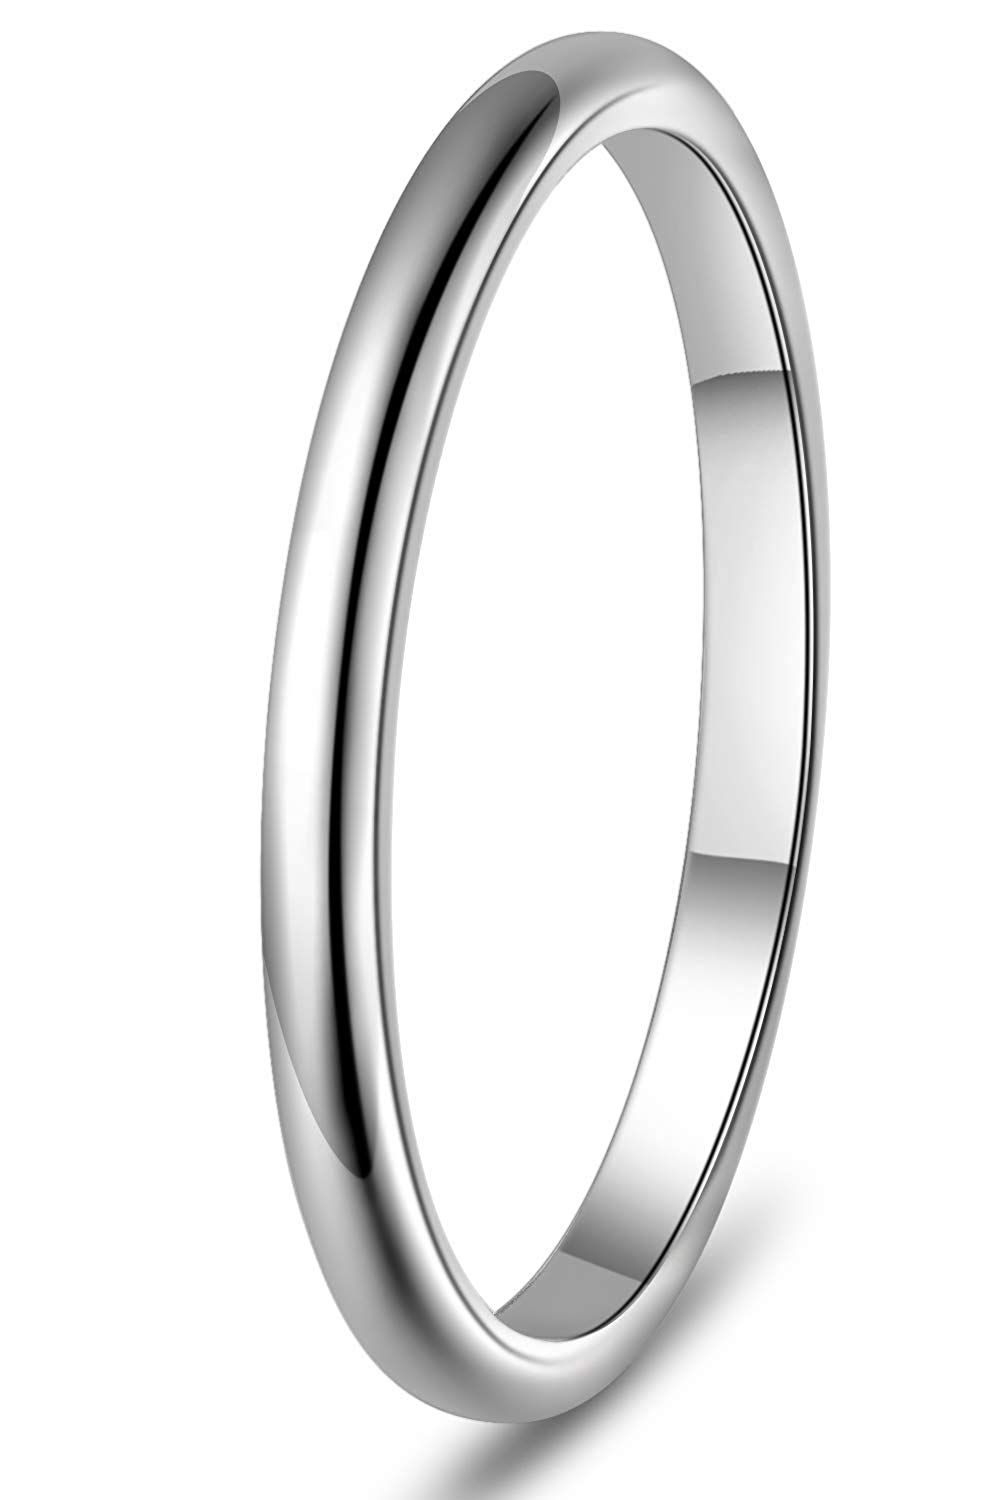 Bridal Wedding Bands Decorative Bands Stainless Steel Polished Beaded Grooved Ring Size 11.5